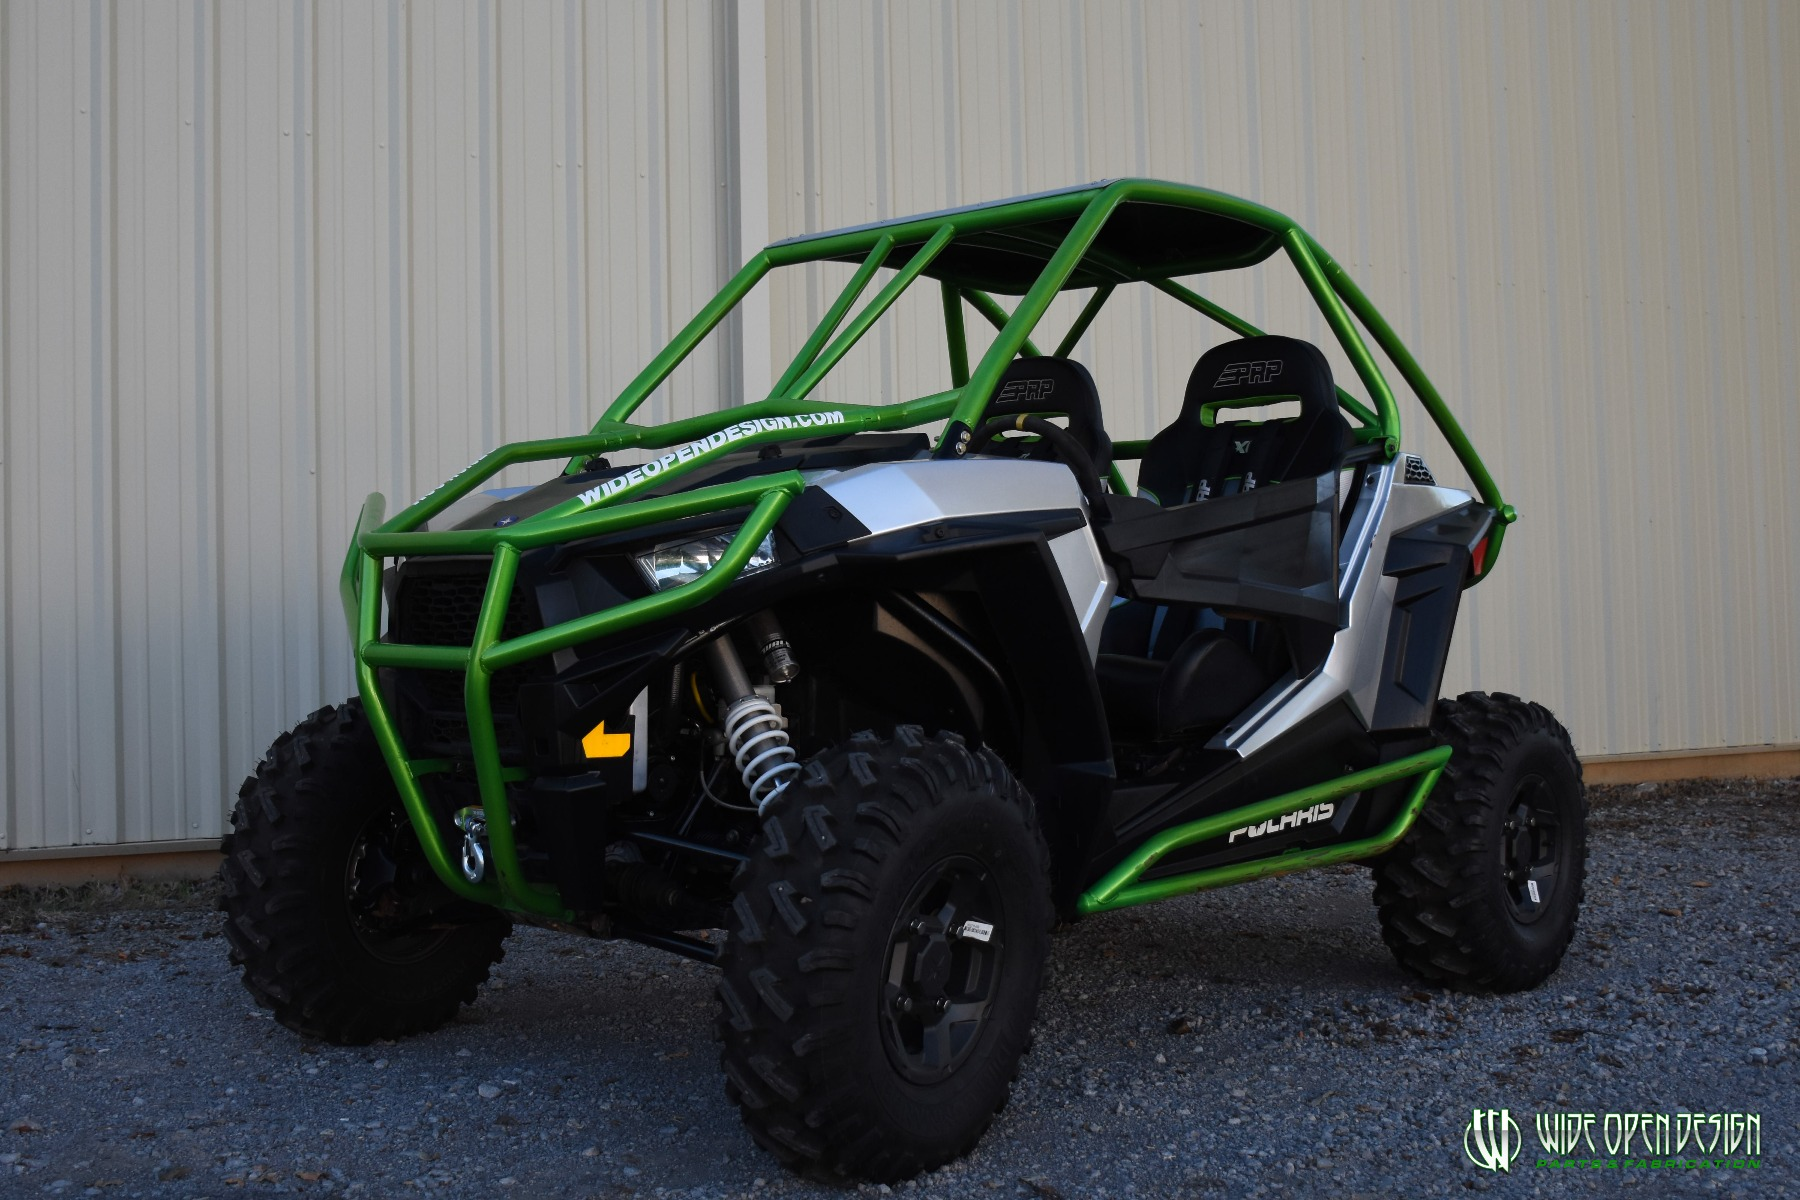 Jason's 1000s RZR with Wide Open Design Rolled Roof Cage, Front Bumper with Tie In, and Rocker Guards 14